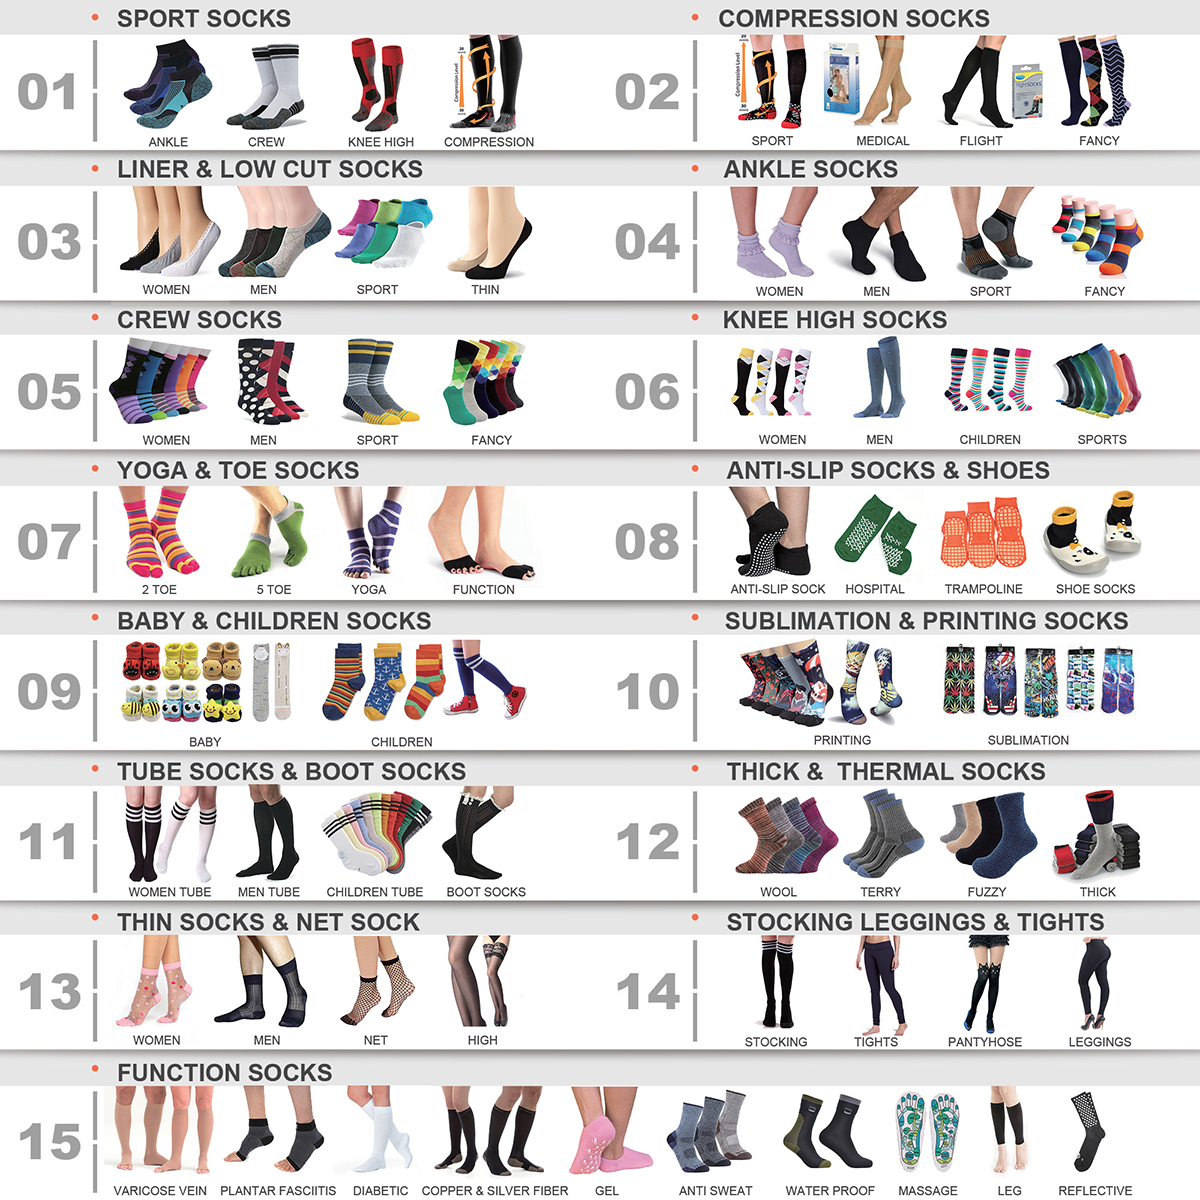 DL-I-0289 women cute ankle socks anklet socks for women sexy girls wearing low cut ankle socks